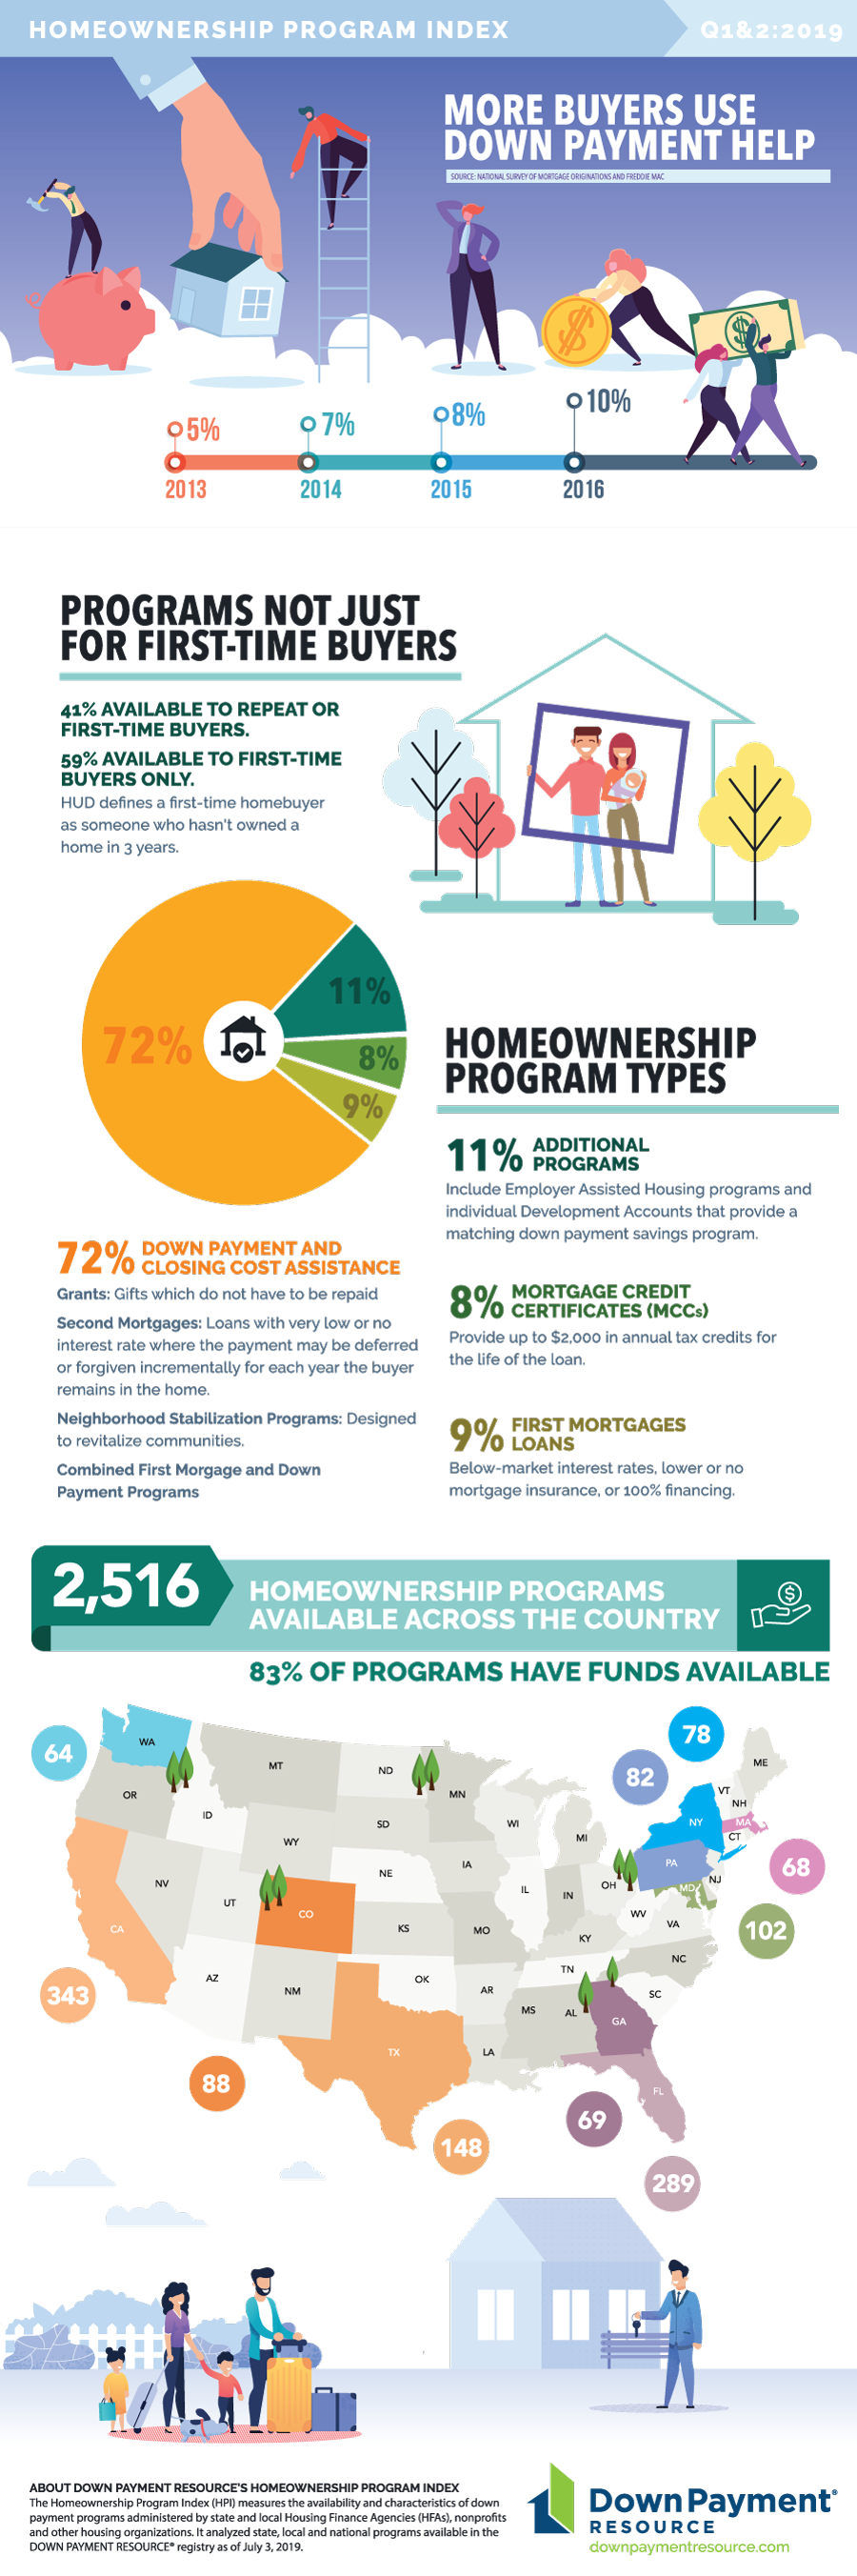 Homeownership Program Index Q2 2019